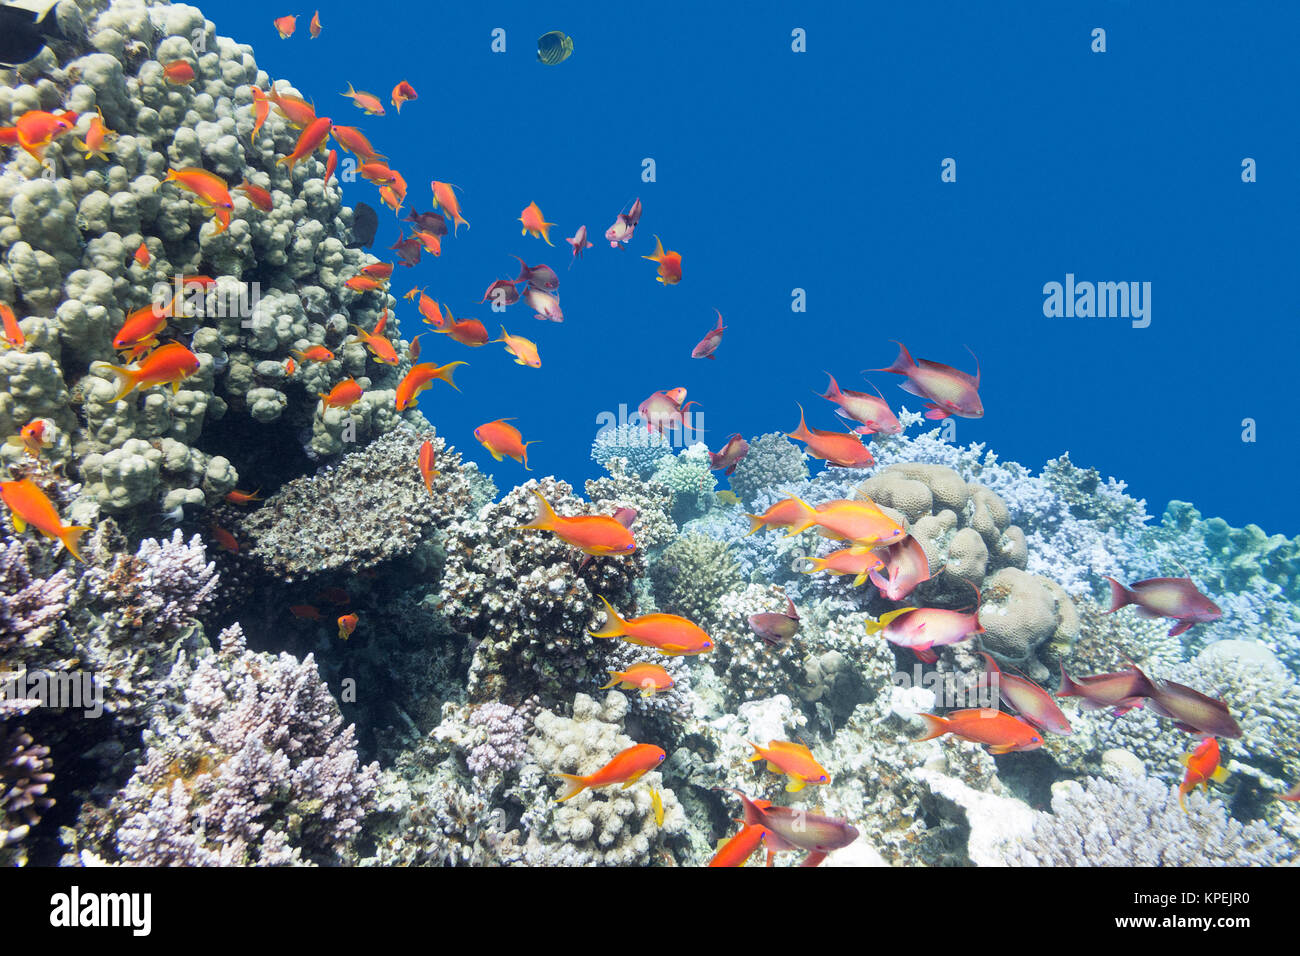 coral reef with shoal of fishes scalefin anthias, underwater - Stock Image